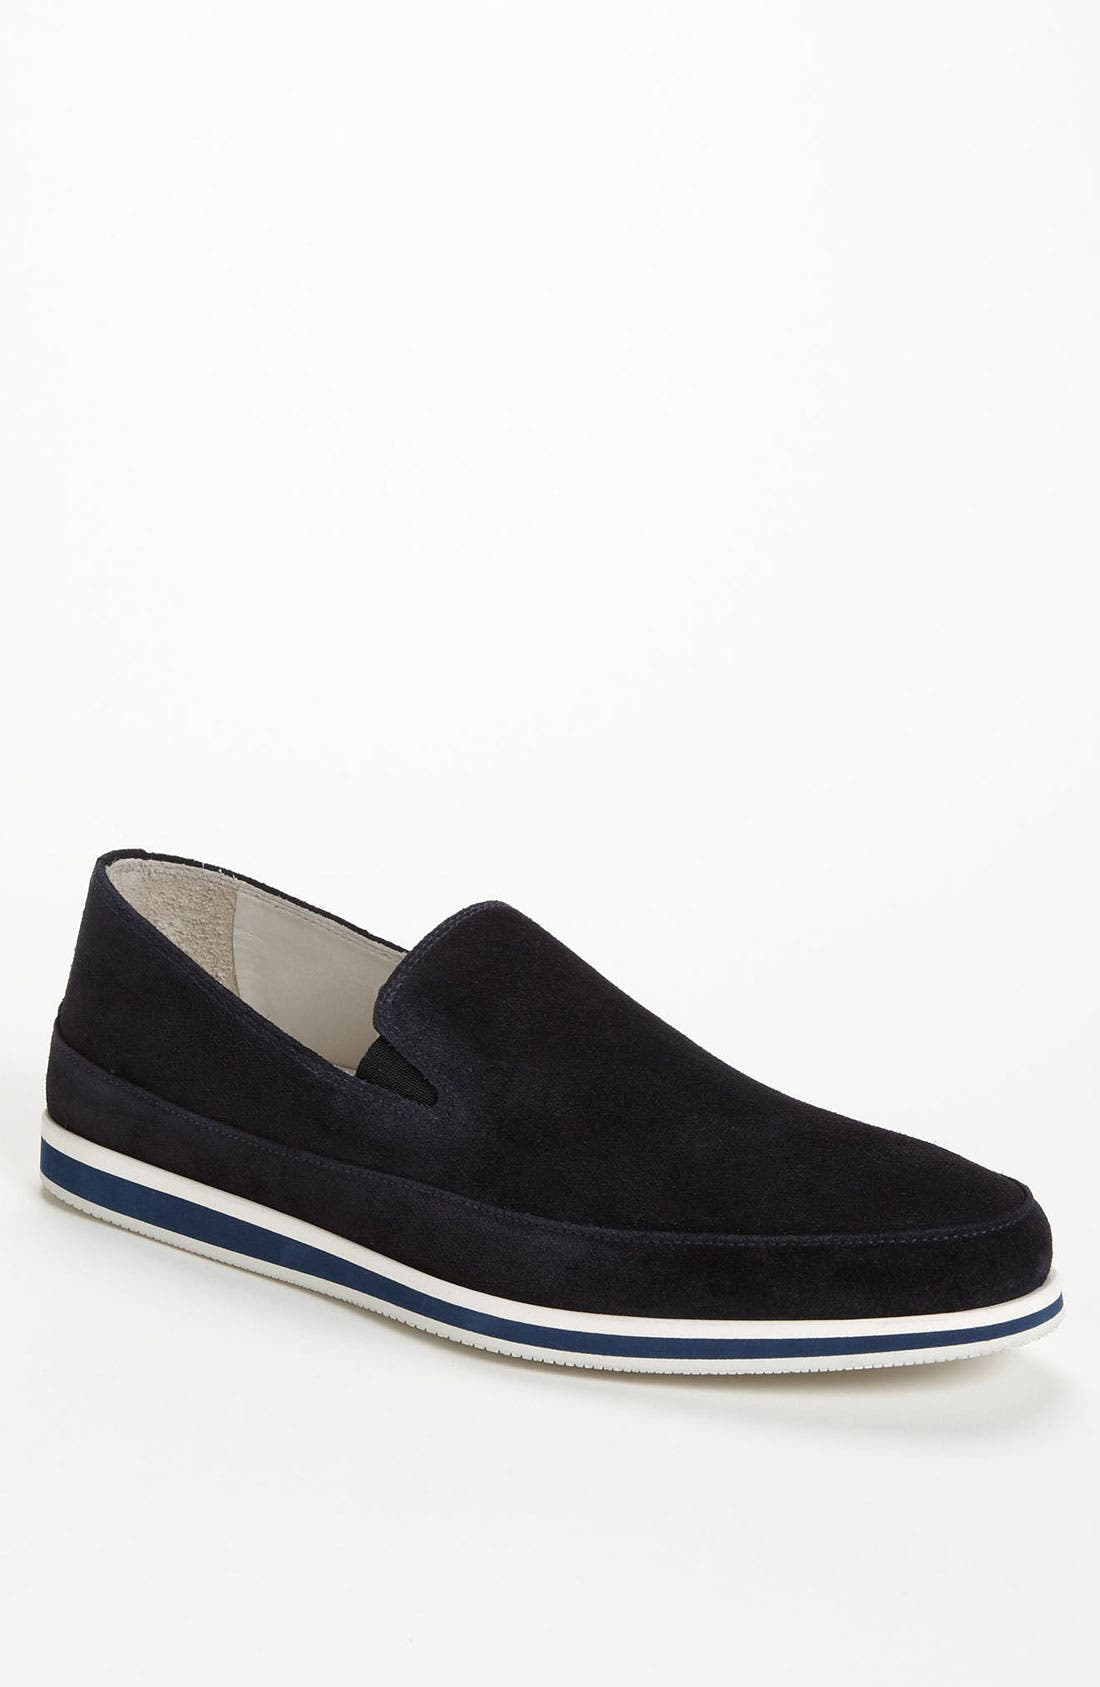 Alternate Image 1 Selected - Prada Suede Loafer